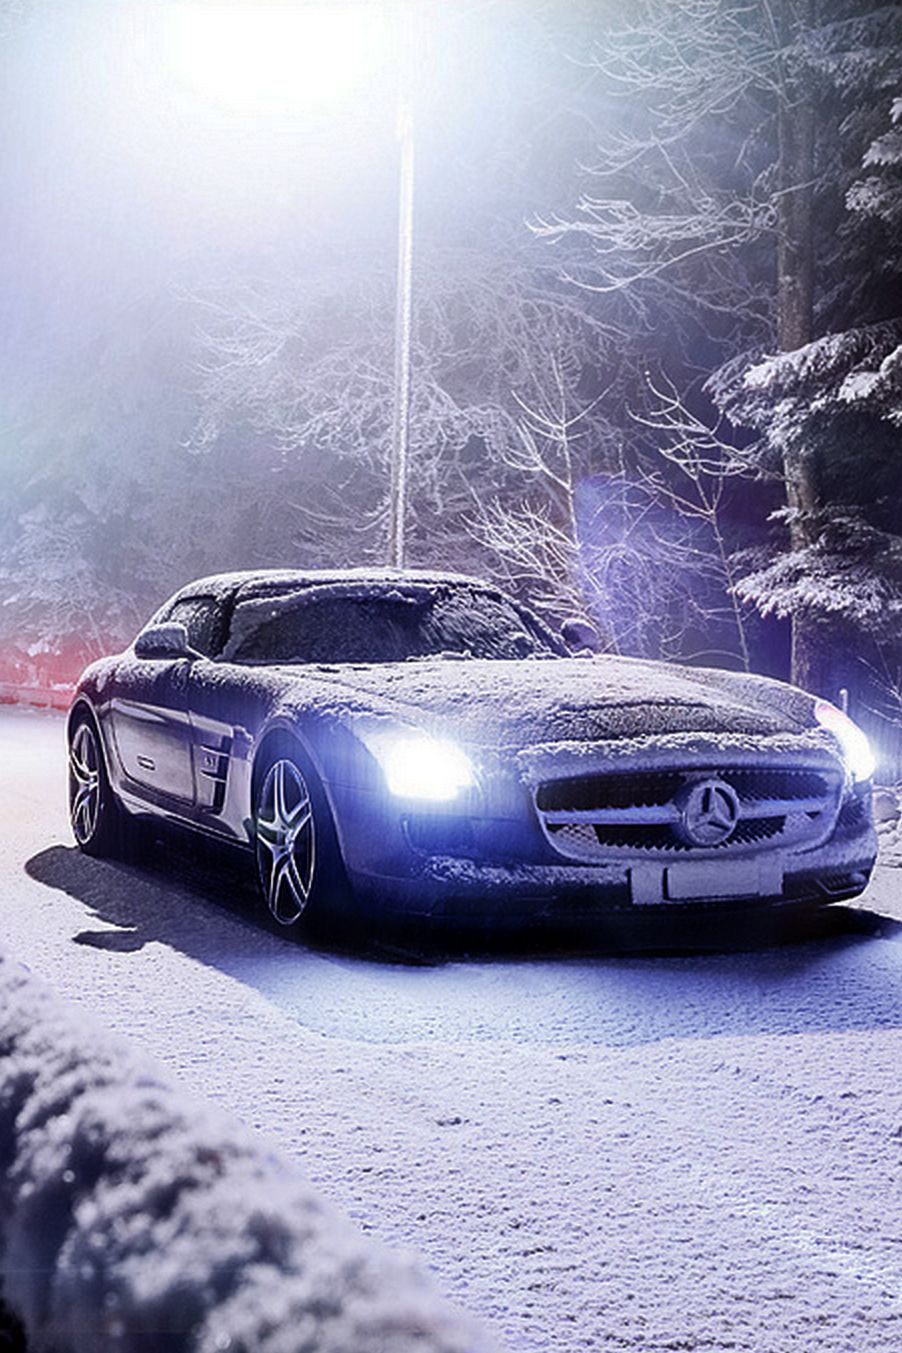 Winter Luxury Land Drive To The Chalet Ladyluxurydesigns Mercedes Benz Sls Amg Super Cars Mercedes